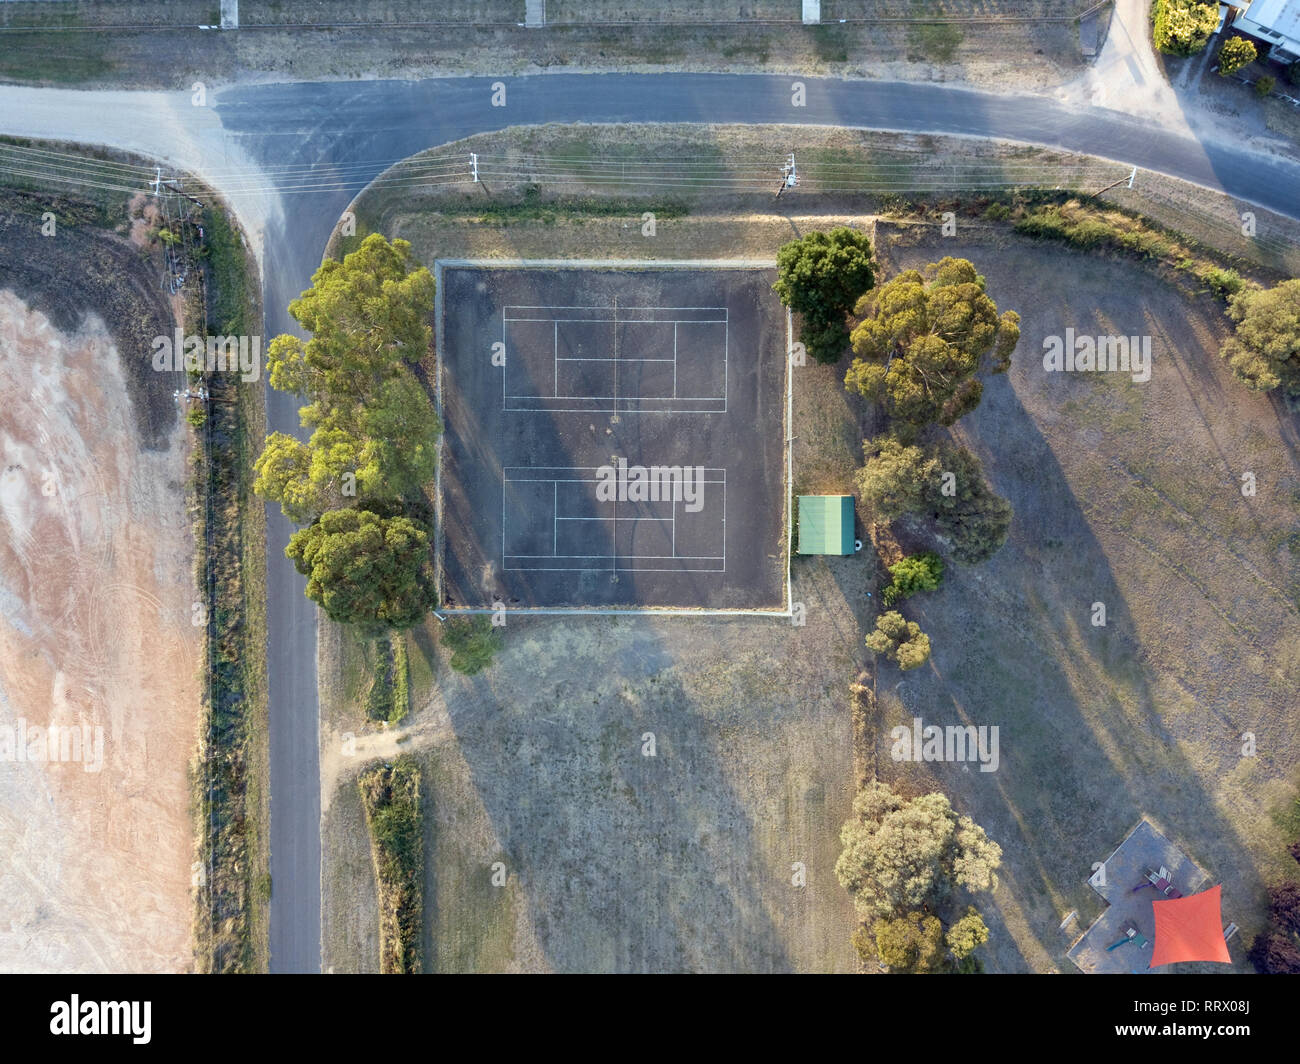 Tennis court aerial view empty of people in a small town Australia with country roads, trees and large expanse of paddocks and space. - Stock Image